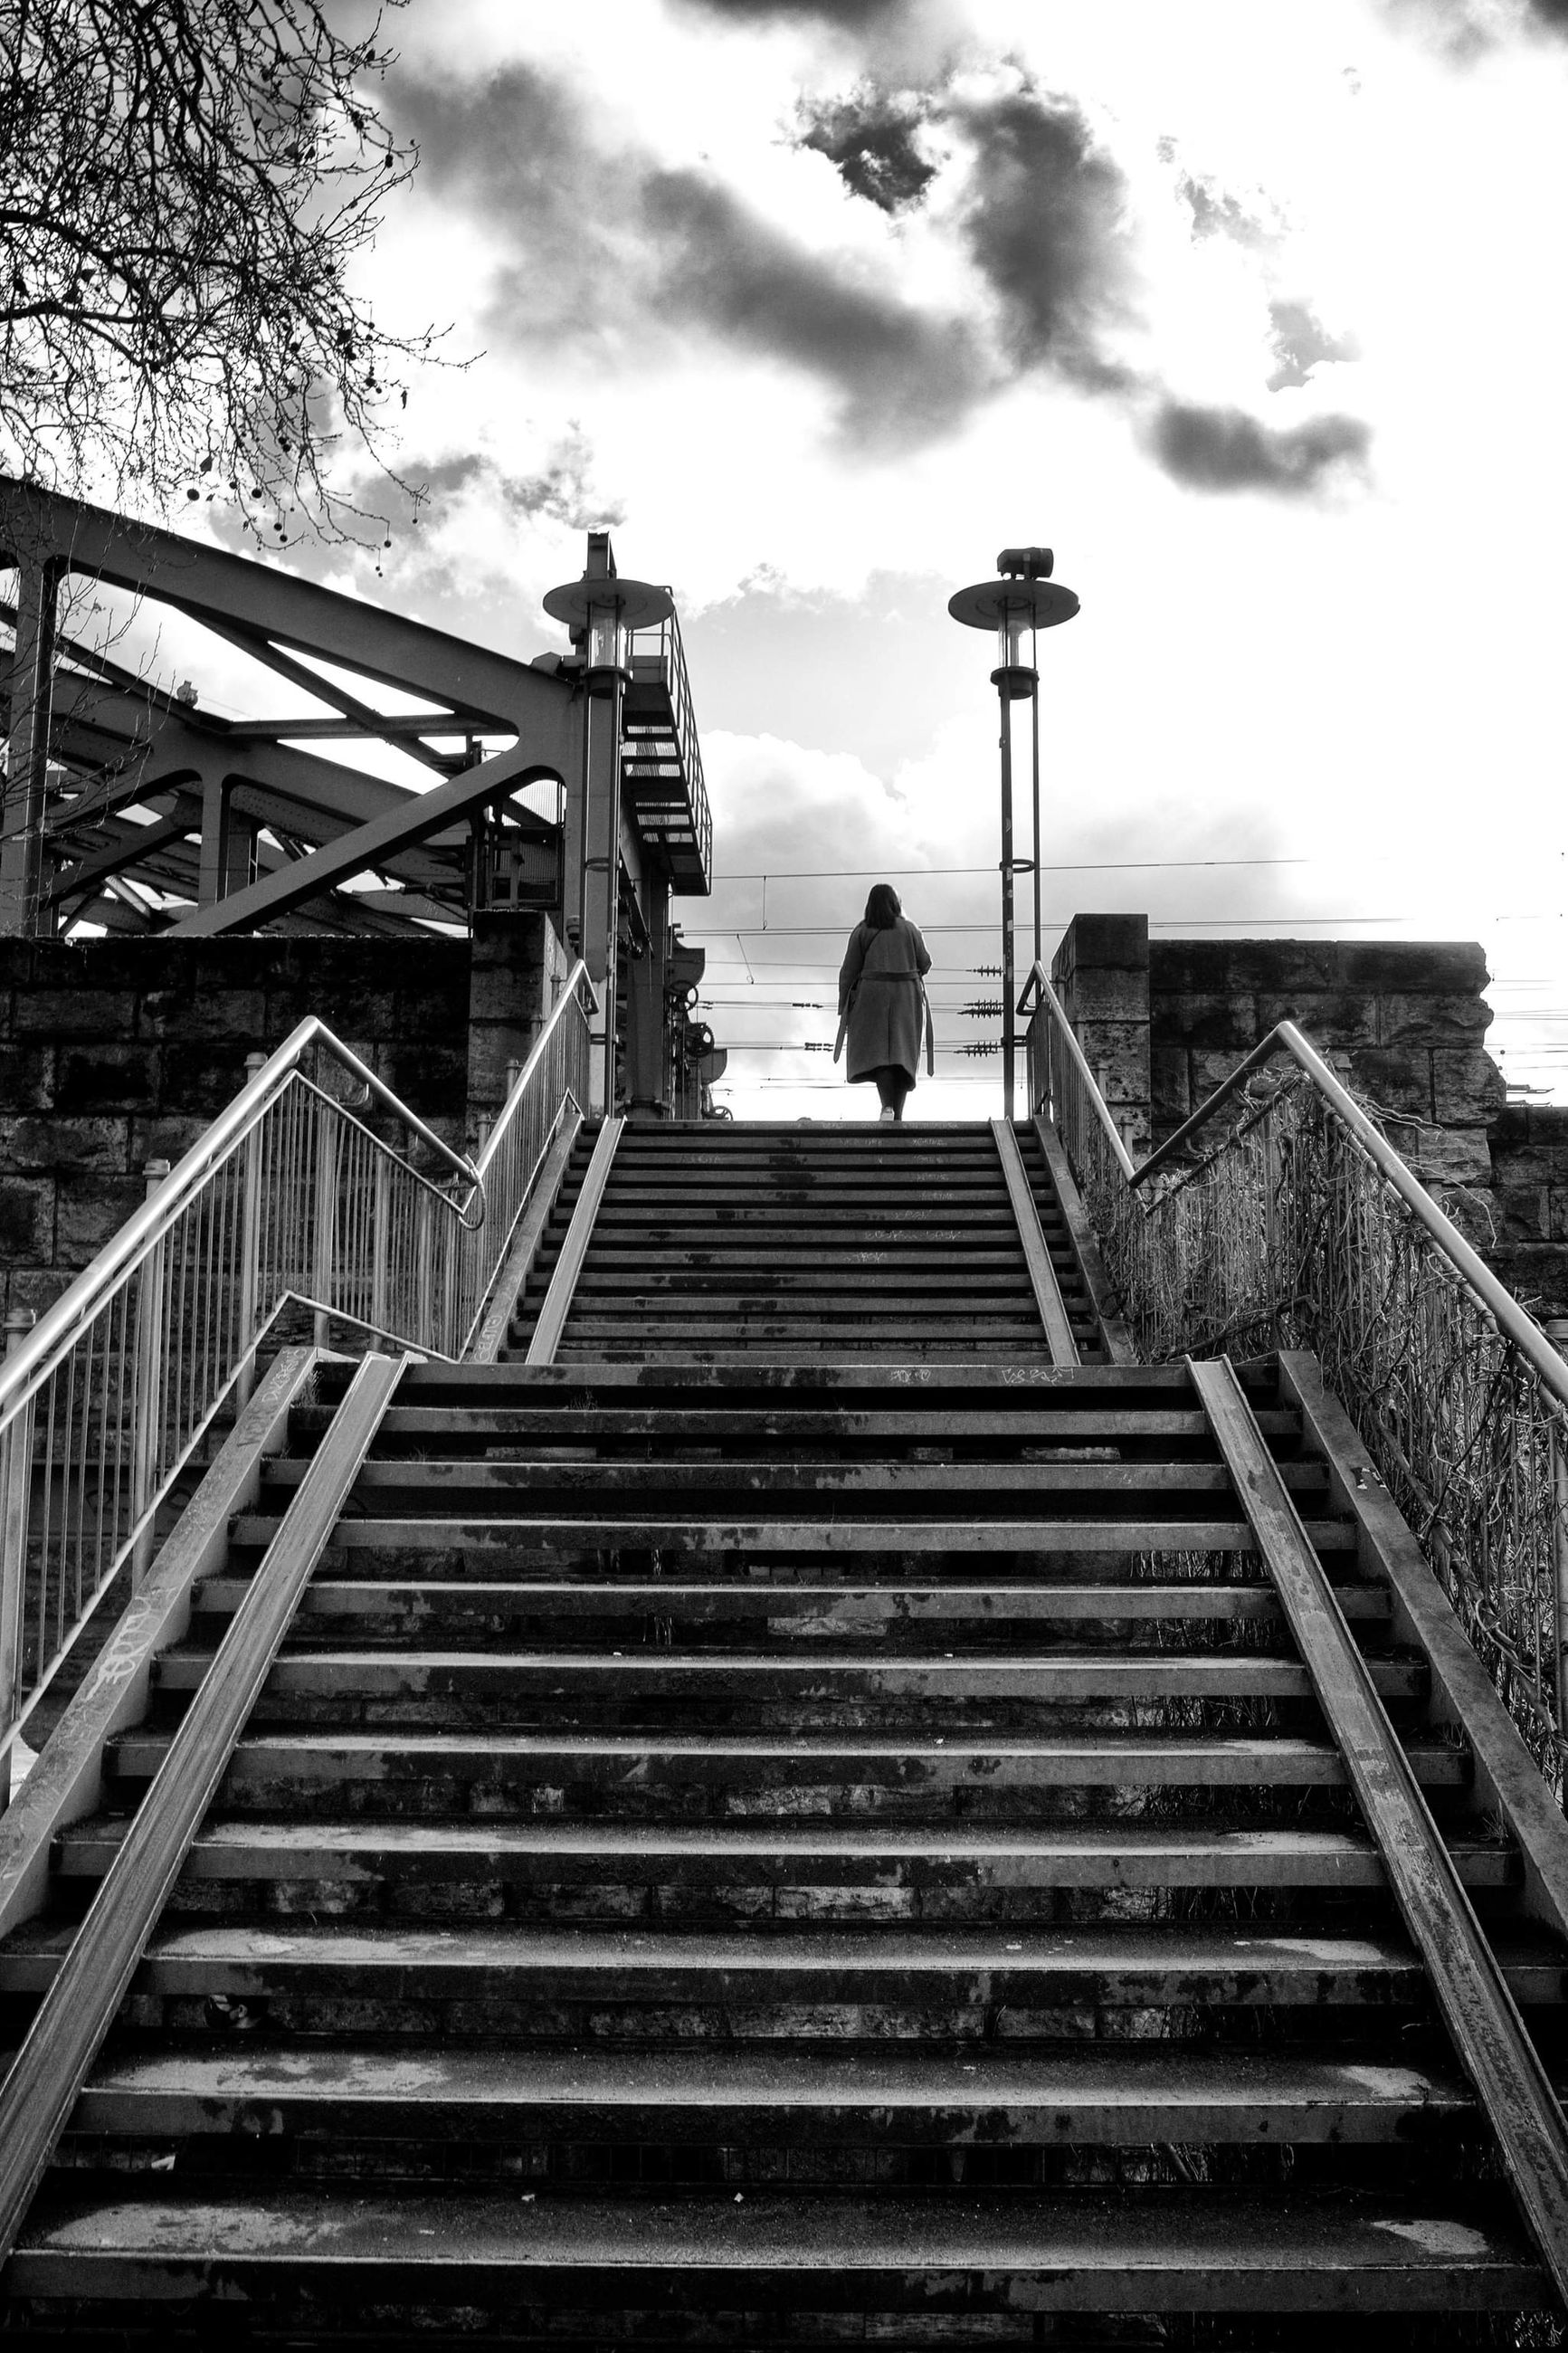 staircase, steps and staircases, architecture, railing, sky, stairs, built structure, black and white, one person, cloud, the way forward, monochrome, monochrome photography, full length, nature, men, low angle view, lifestyles, adult, black, day, walking, outdoors, rear view, women, leisure activity, building exterior, standing, transportation